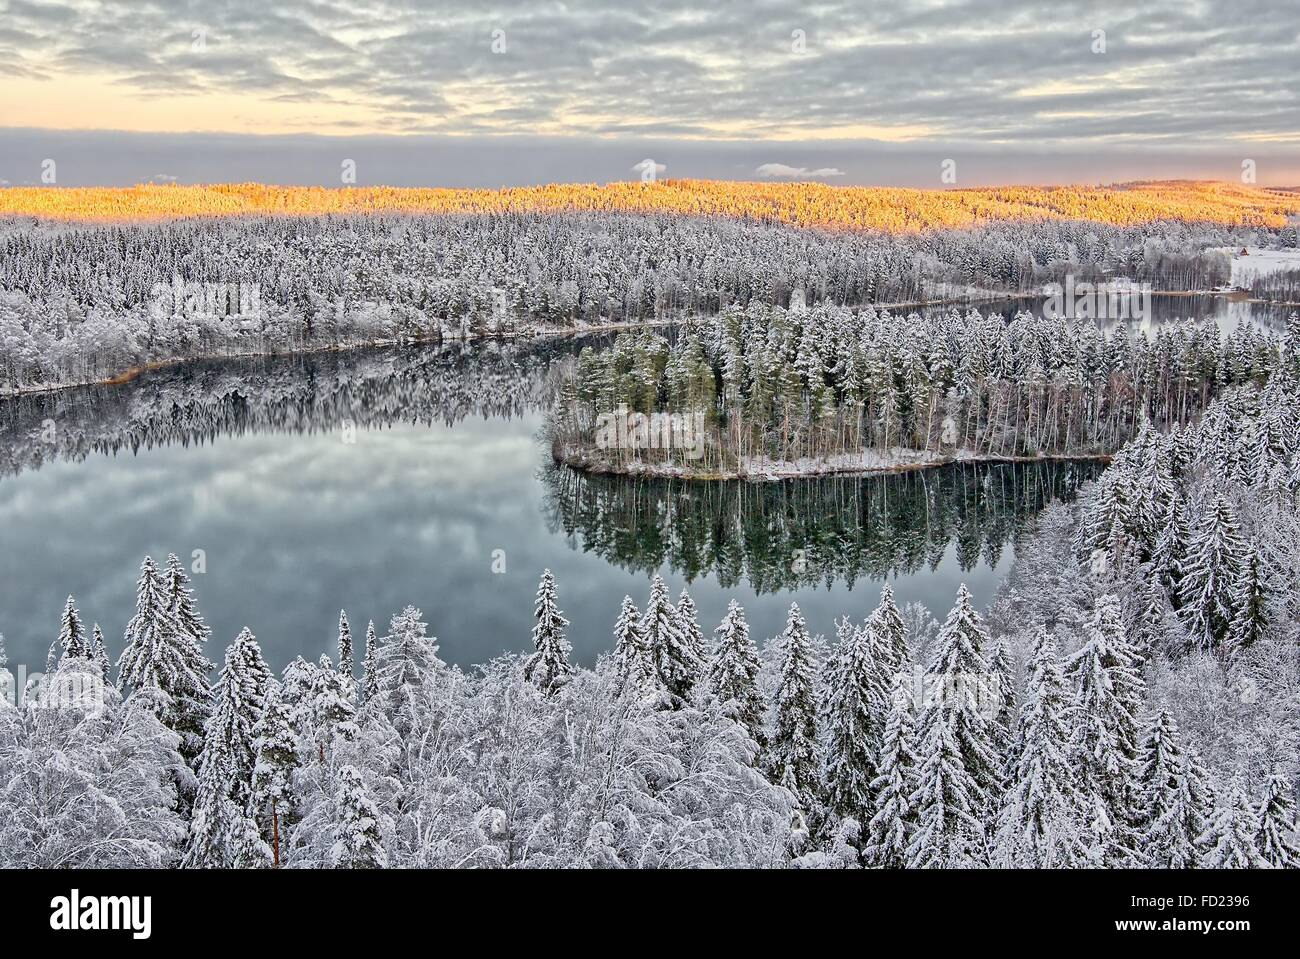 Aerial view of snowy lake and forest at Aulanko nature park in Finland. Late afternoon Sun shining in frozen landscape. Stock Photo